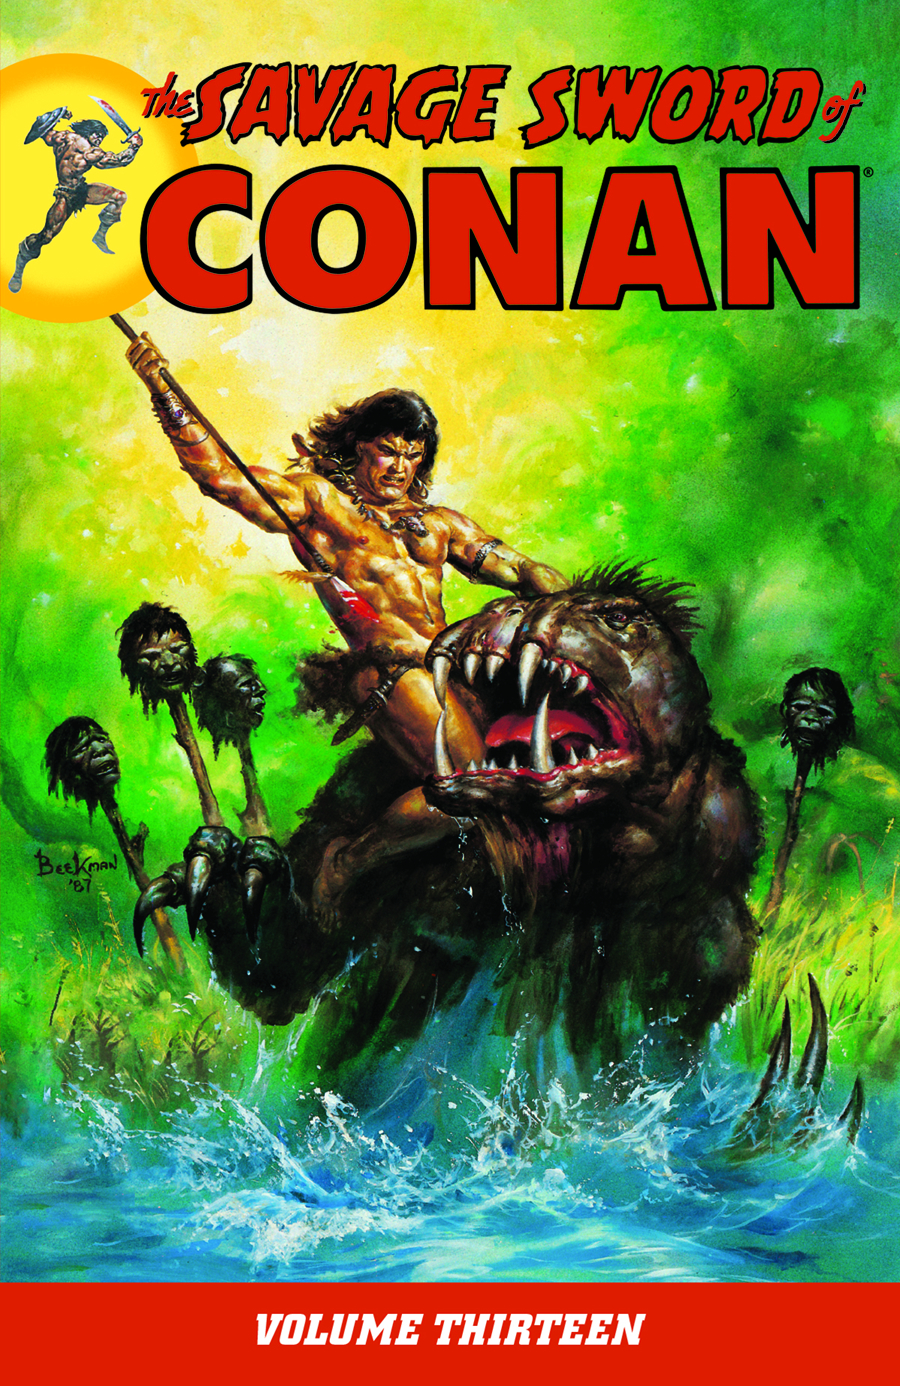 SAVAGE SWORD OF CONAN TP VOL 13